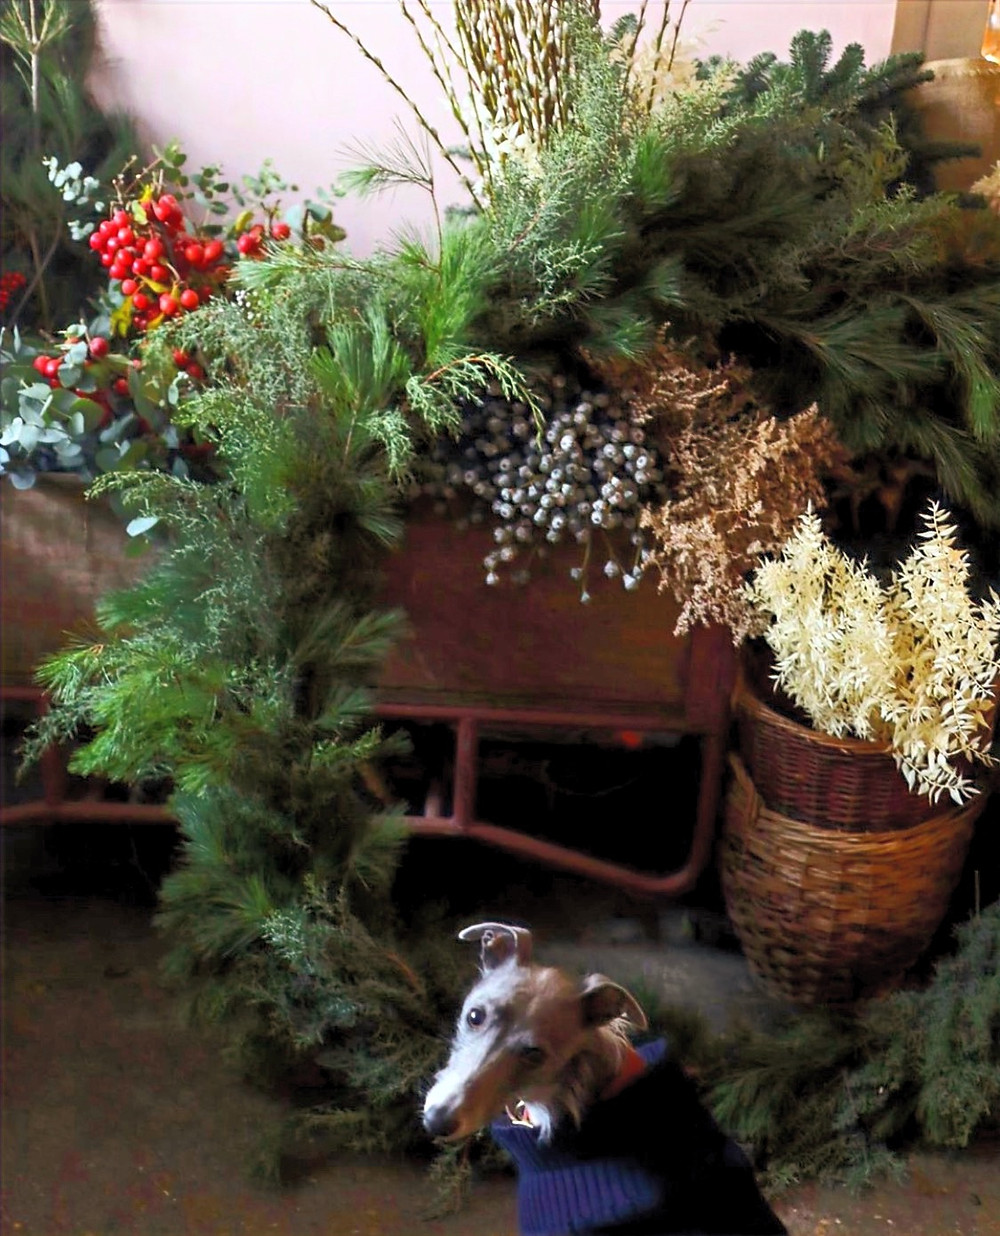 Christmas wreath and garland with small dog and wheelbarrow filled with decorating for the holidays and Christmas